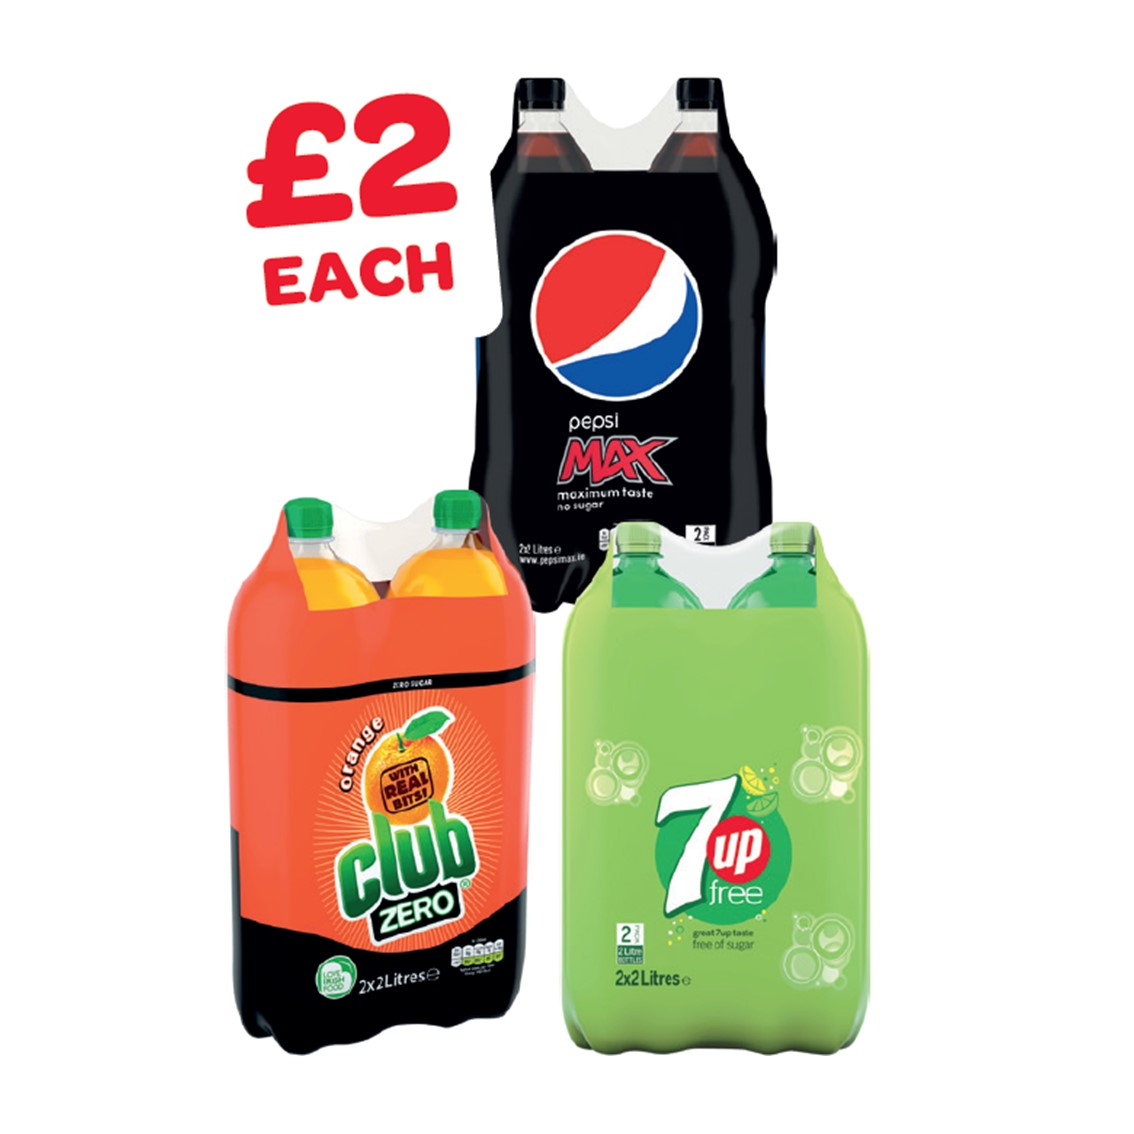 Pepsi Max / Club Zero / 7UP Free 2 Litre